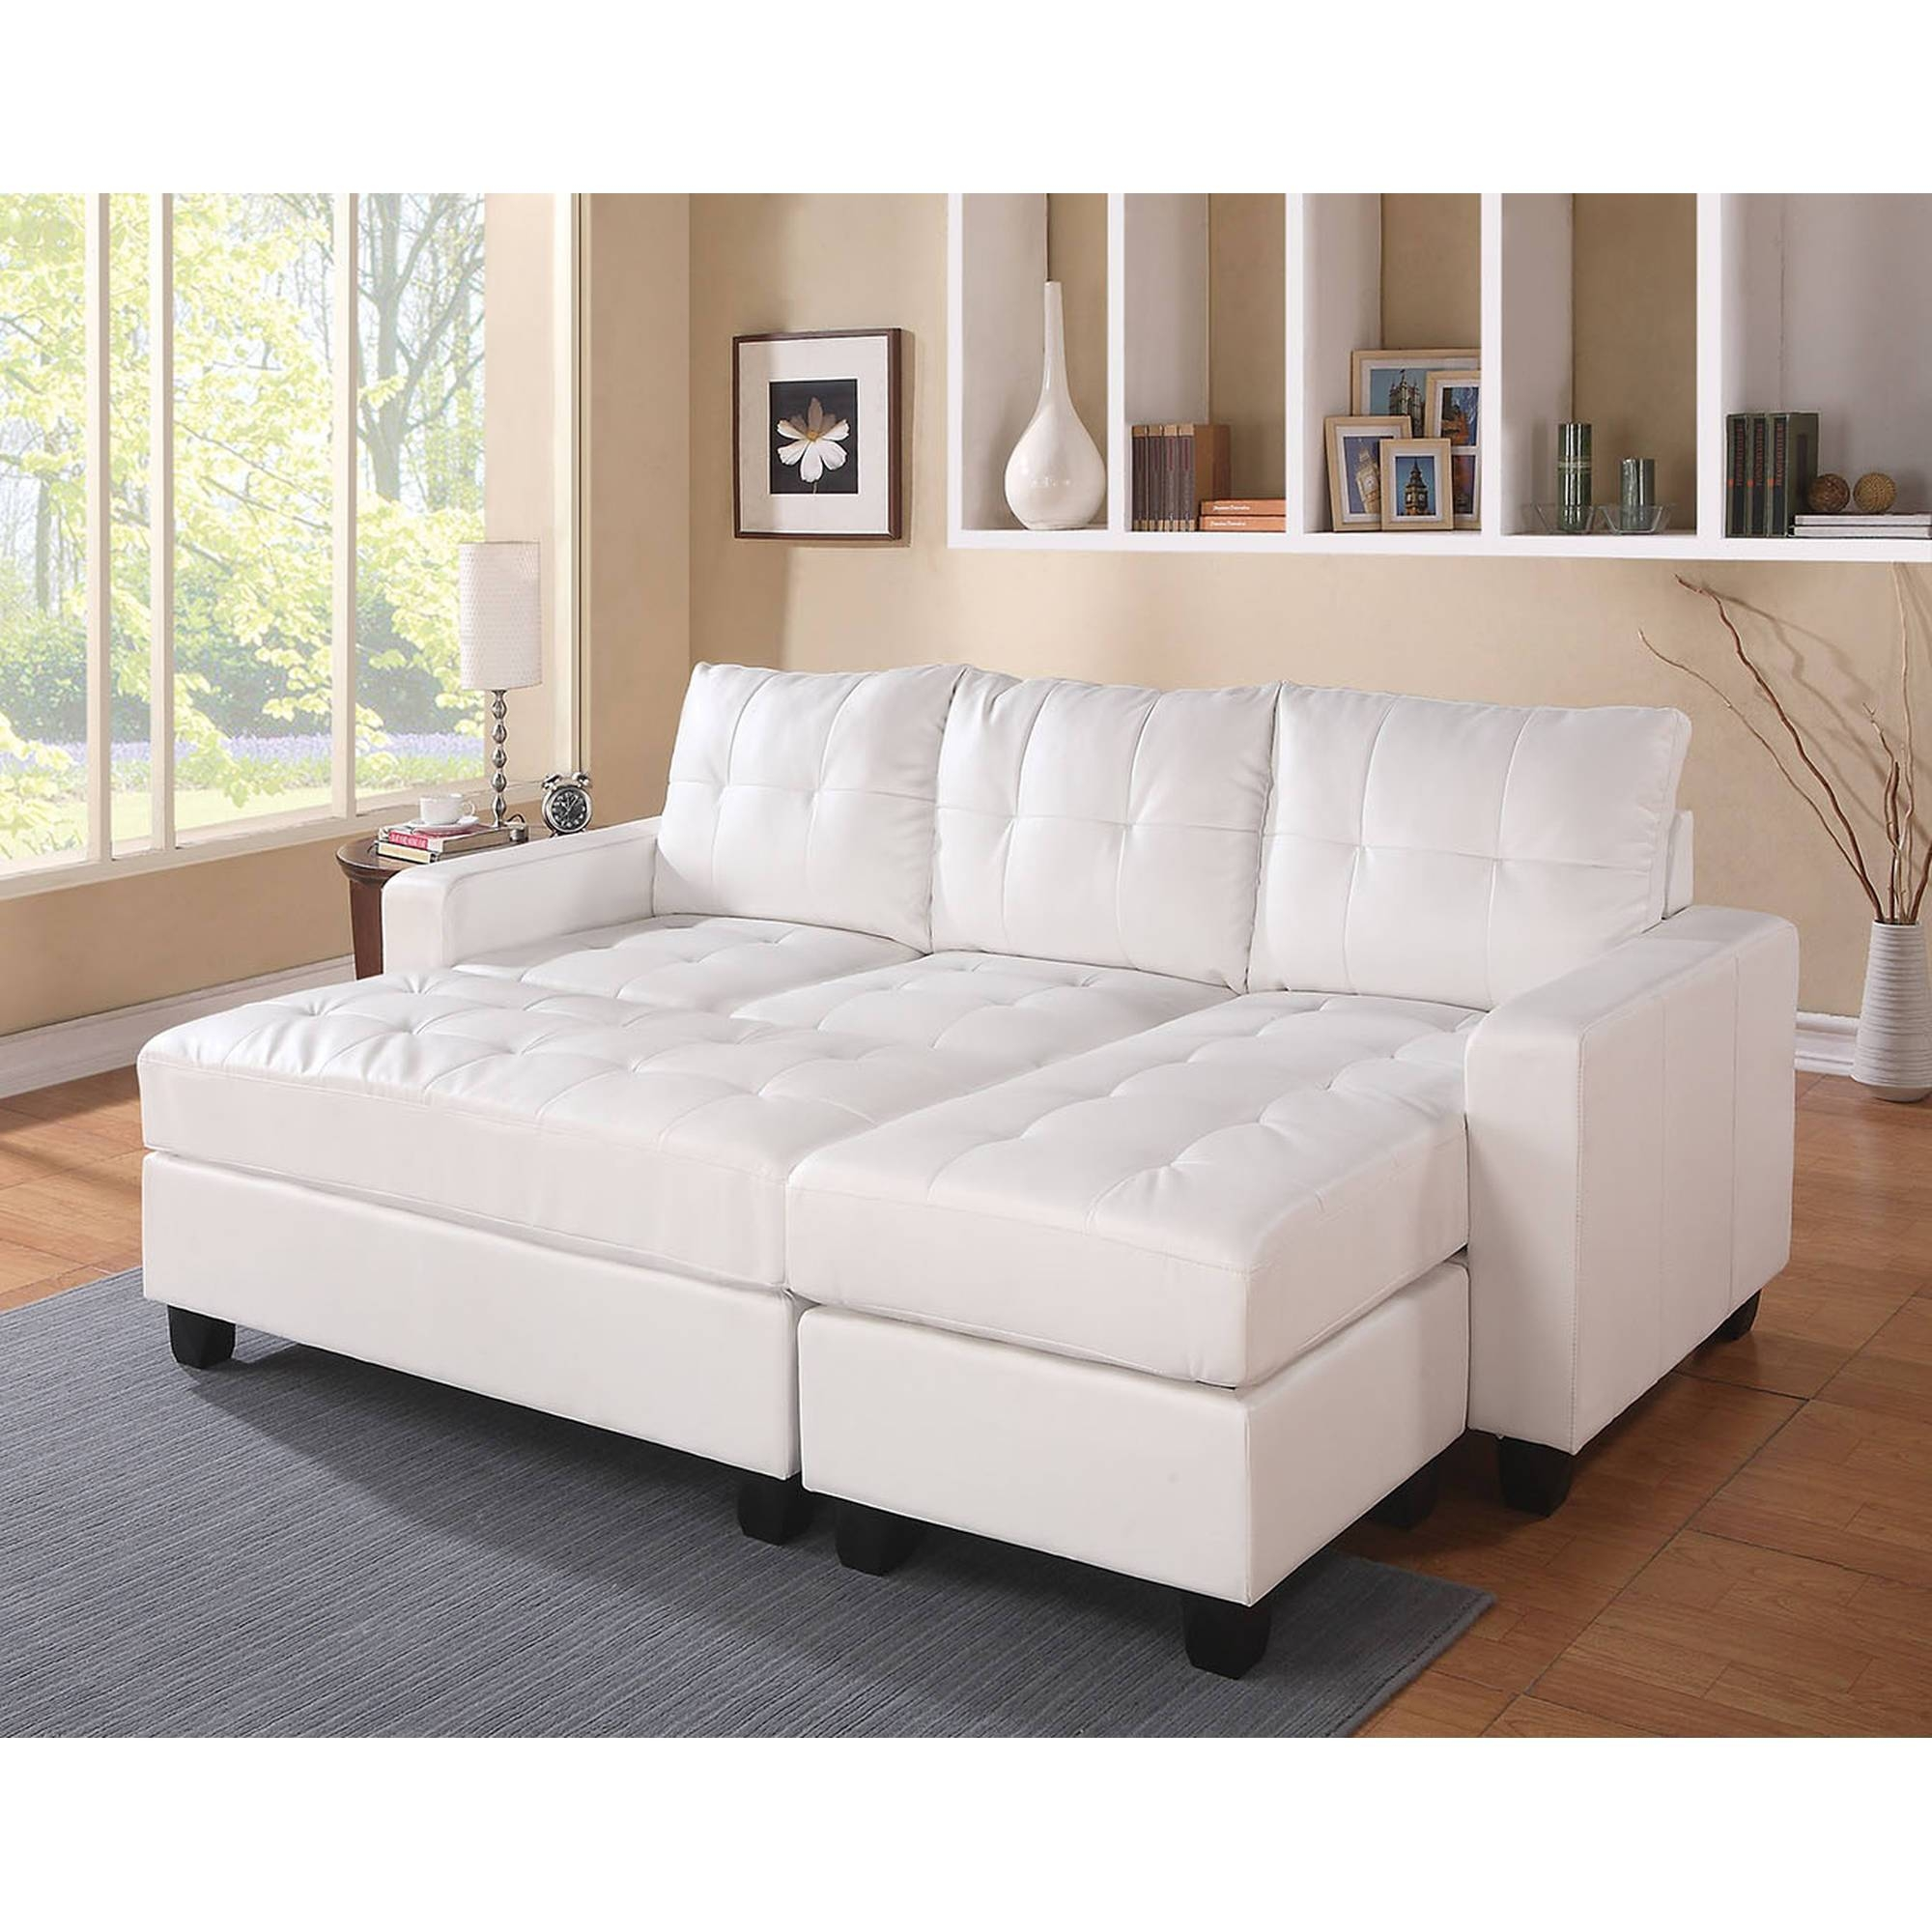 Acme Lyssa Reversible Chaise Sectional And Ottoman, Bonded Leather regarding Sofa With Chaise And Ottoman (Image 3 of 30)